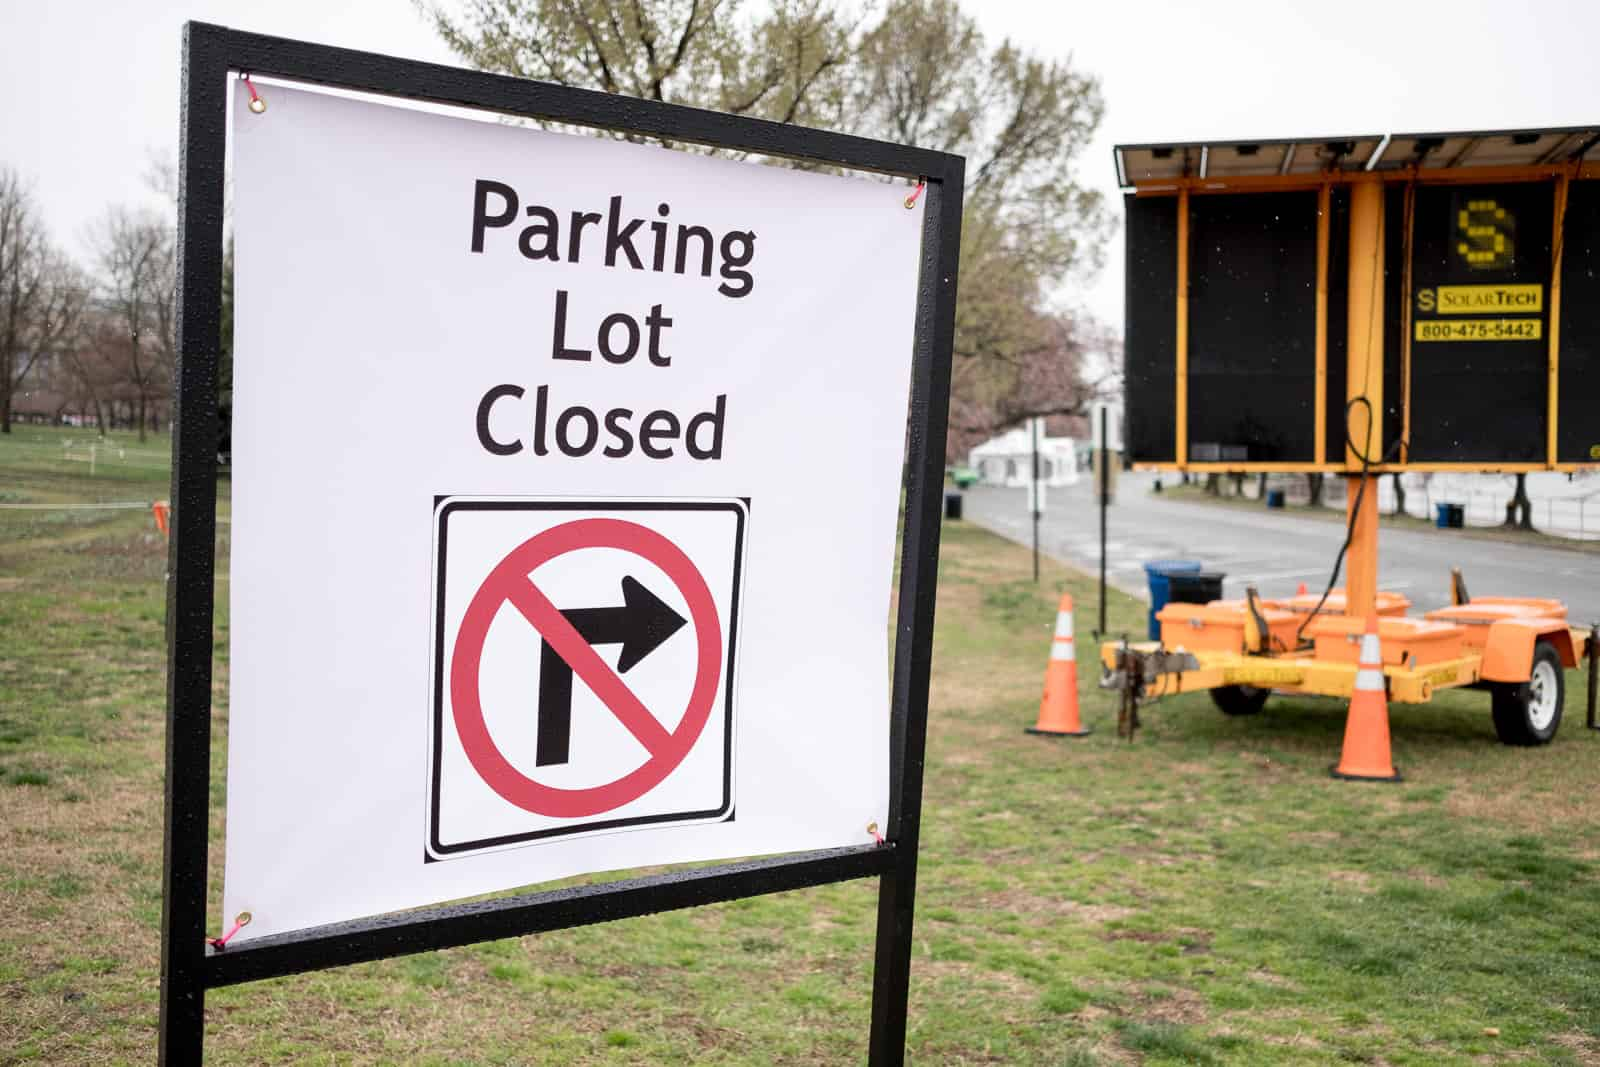 Cherry Blossom Parking Options | Washington DC Cherry Blossom Watch